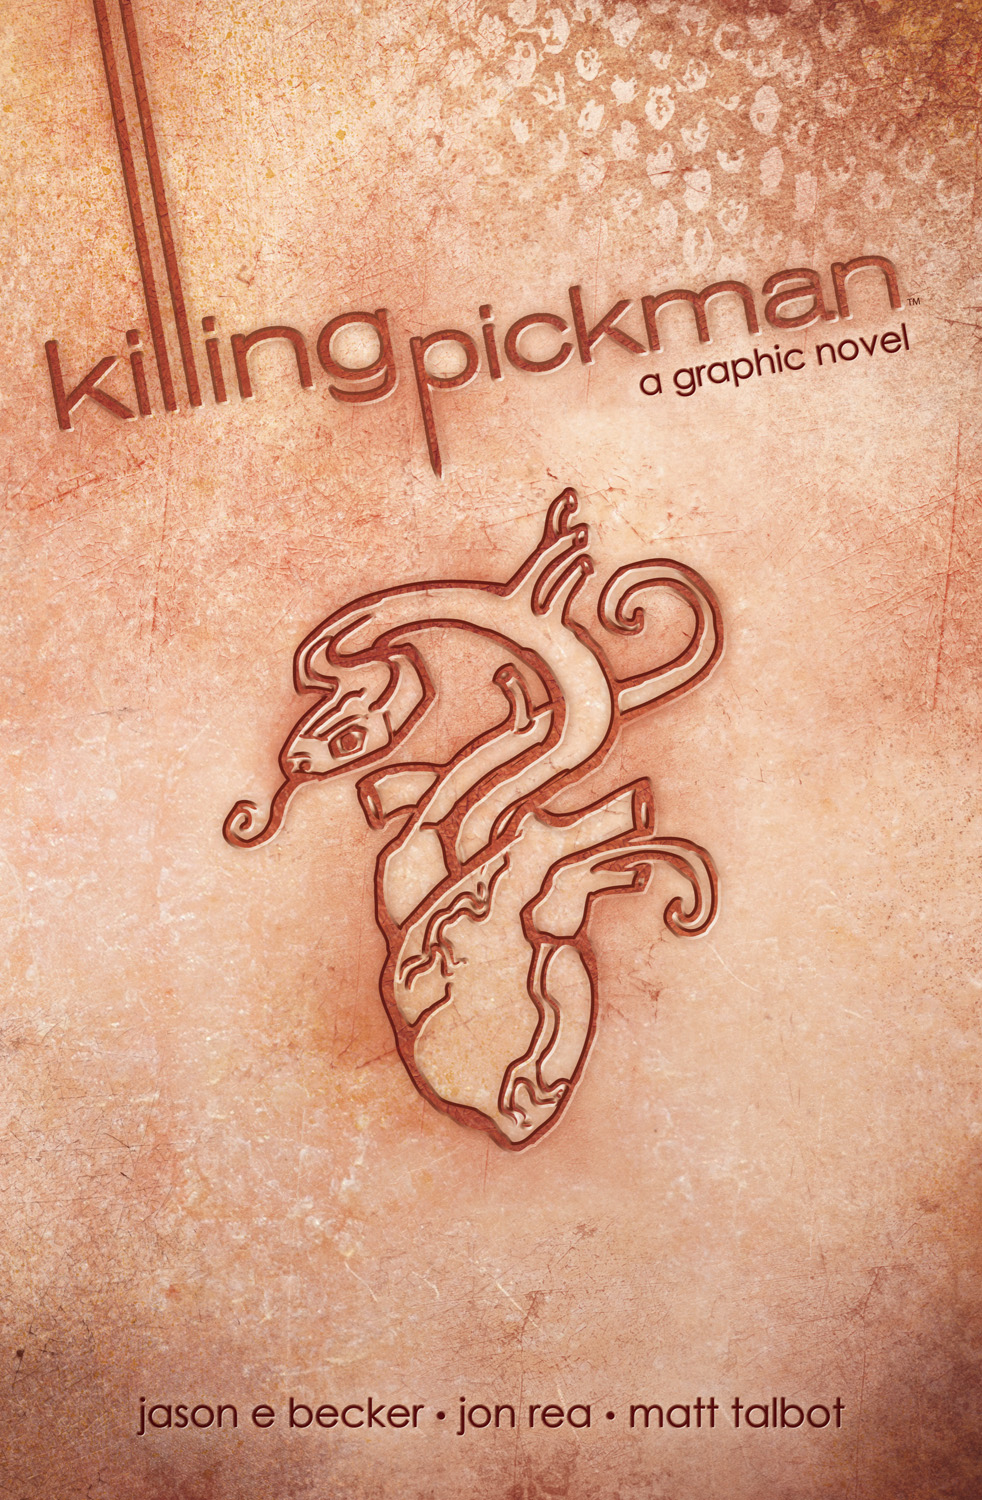 killing-pickman-hc-cover-final